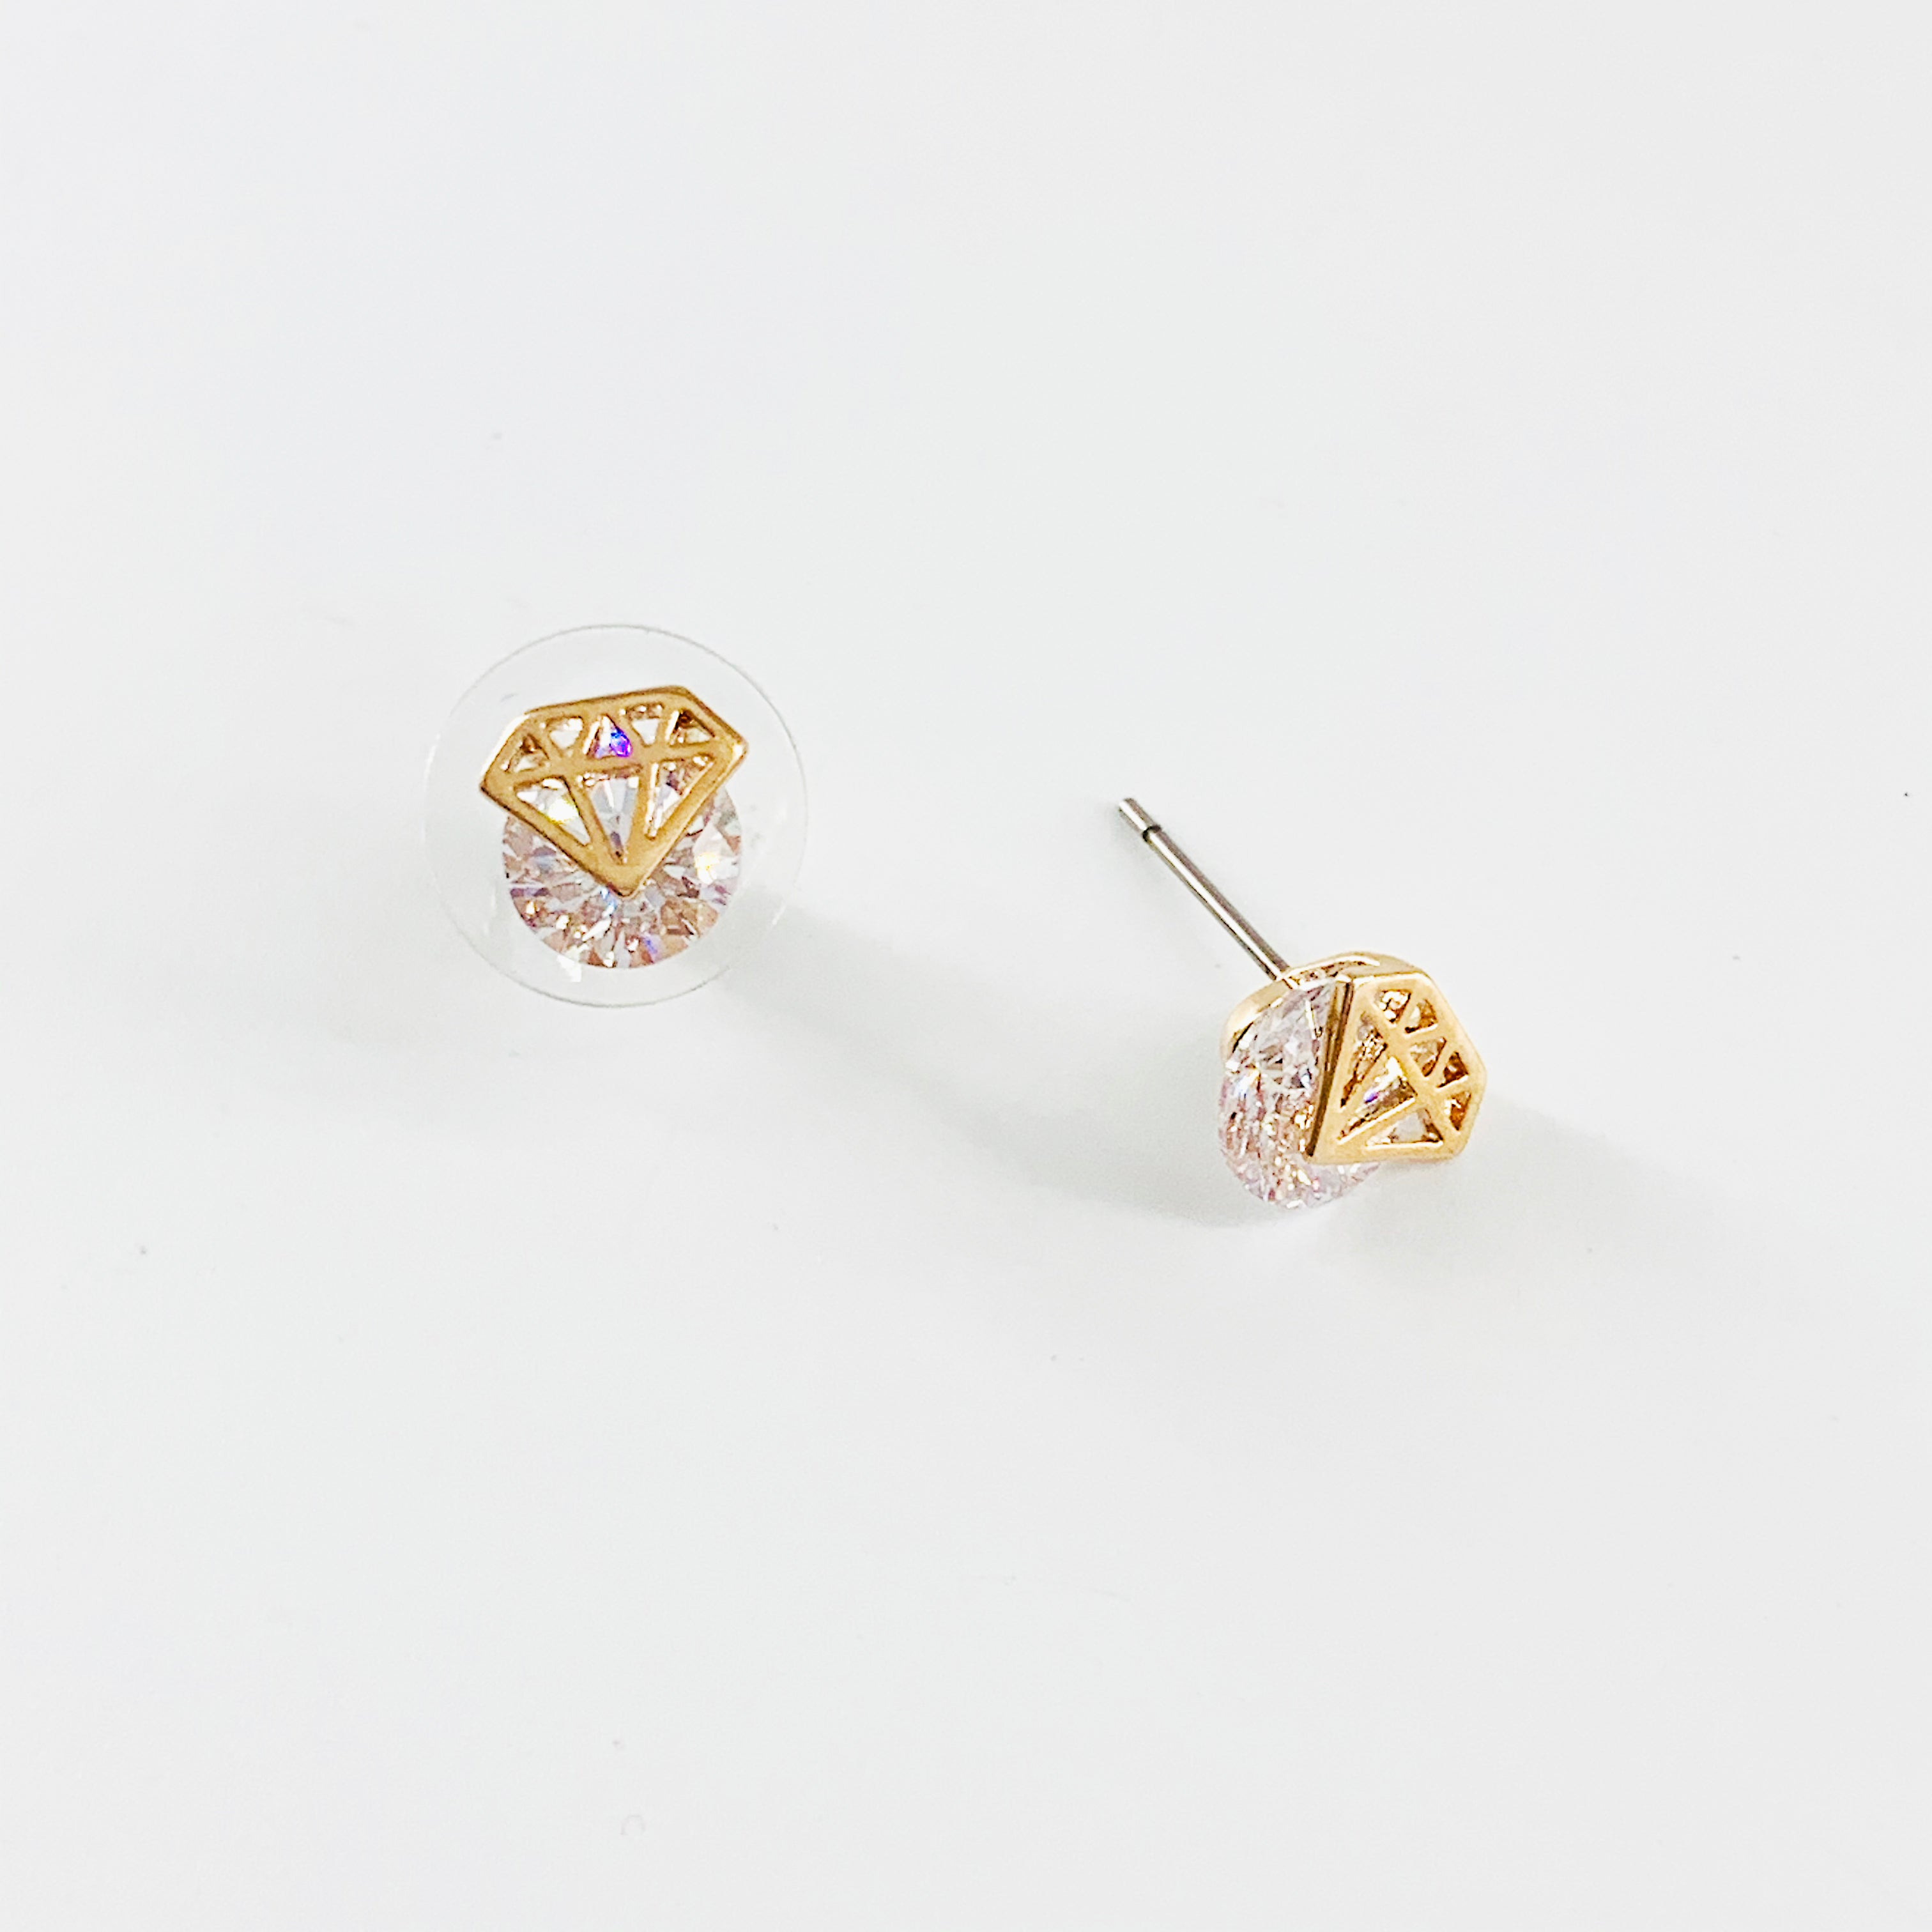 Diamond shaped ear studs with diamante stones